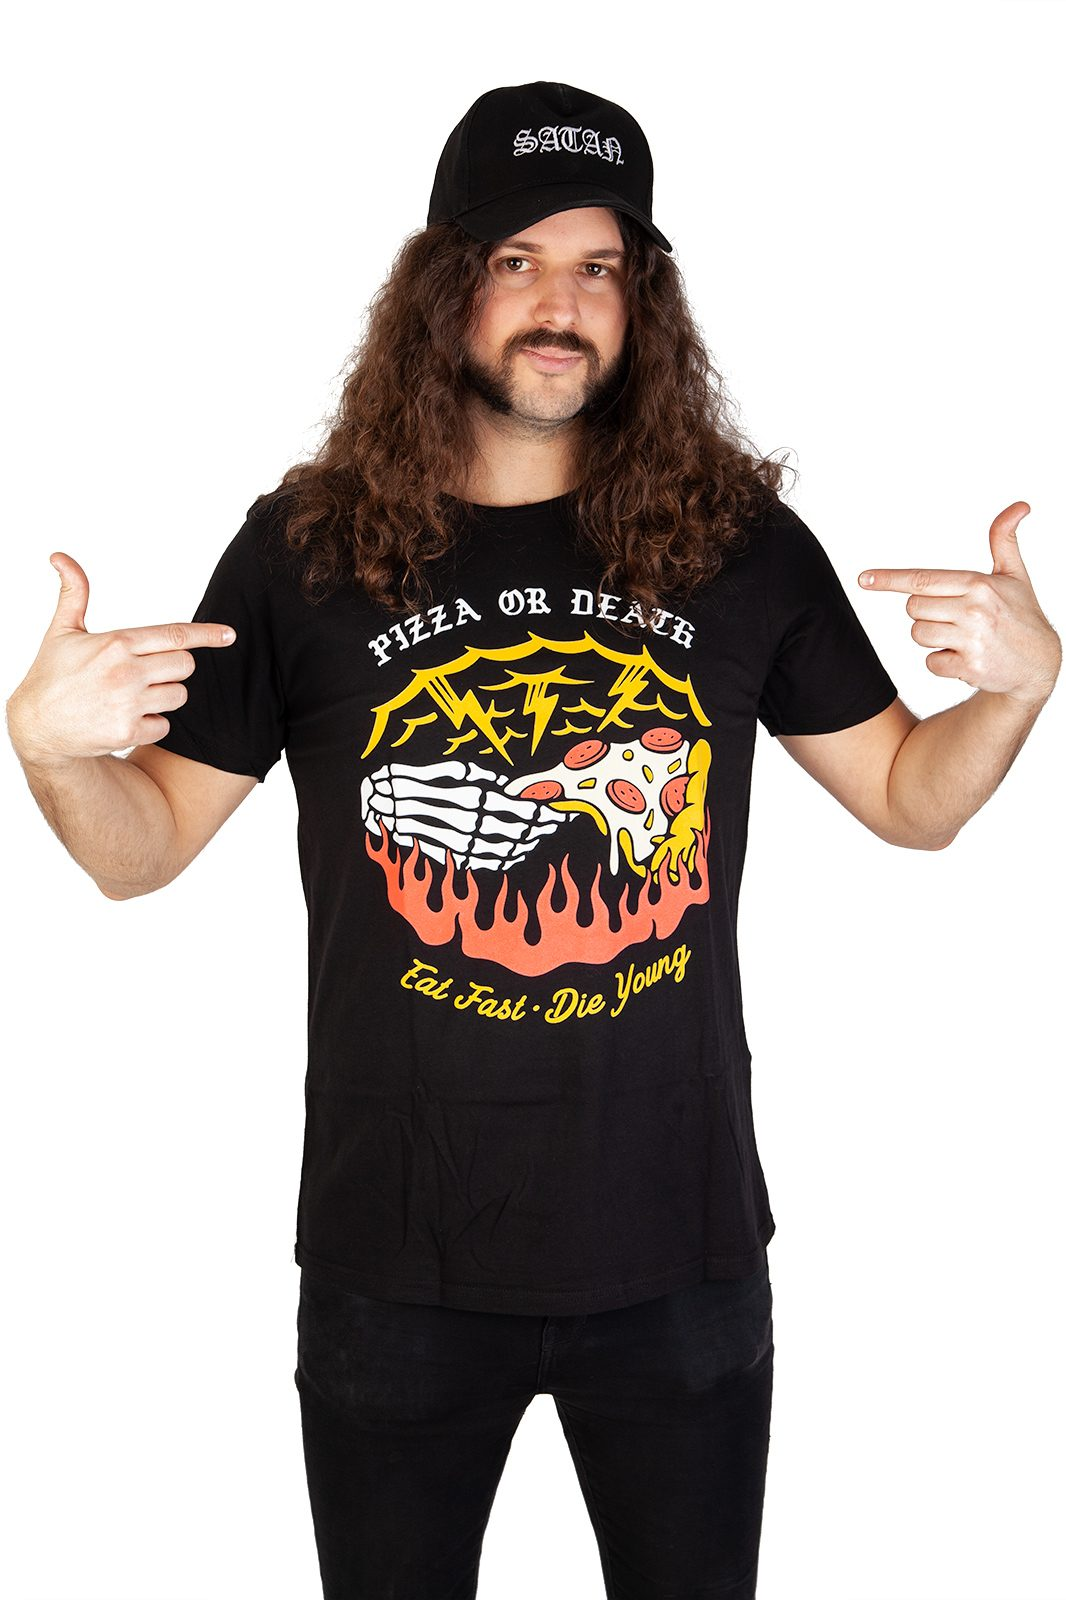 Tee Pizza Or Death Black